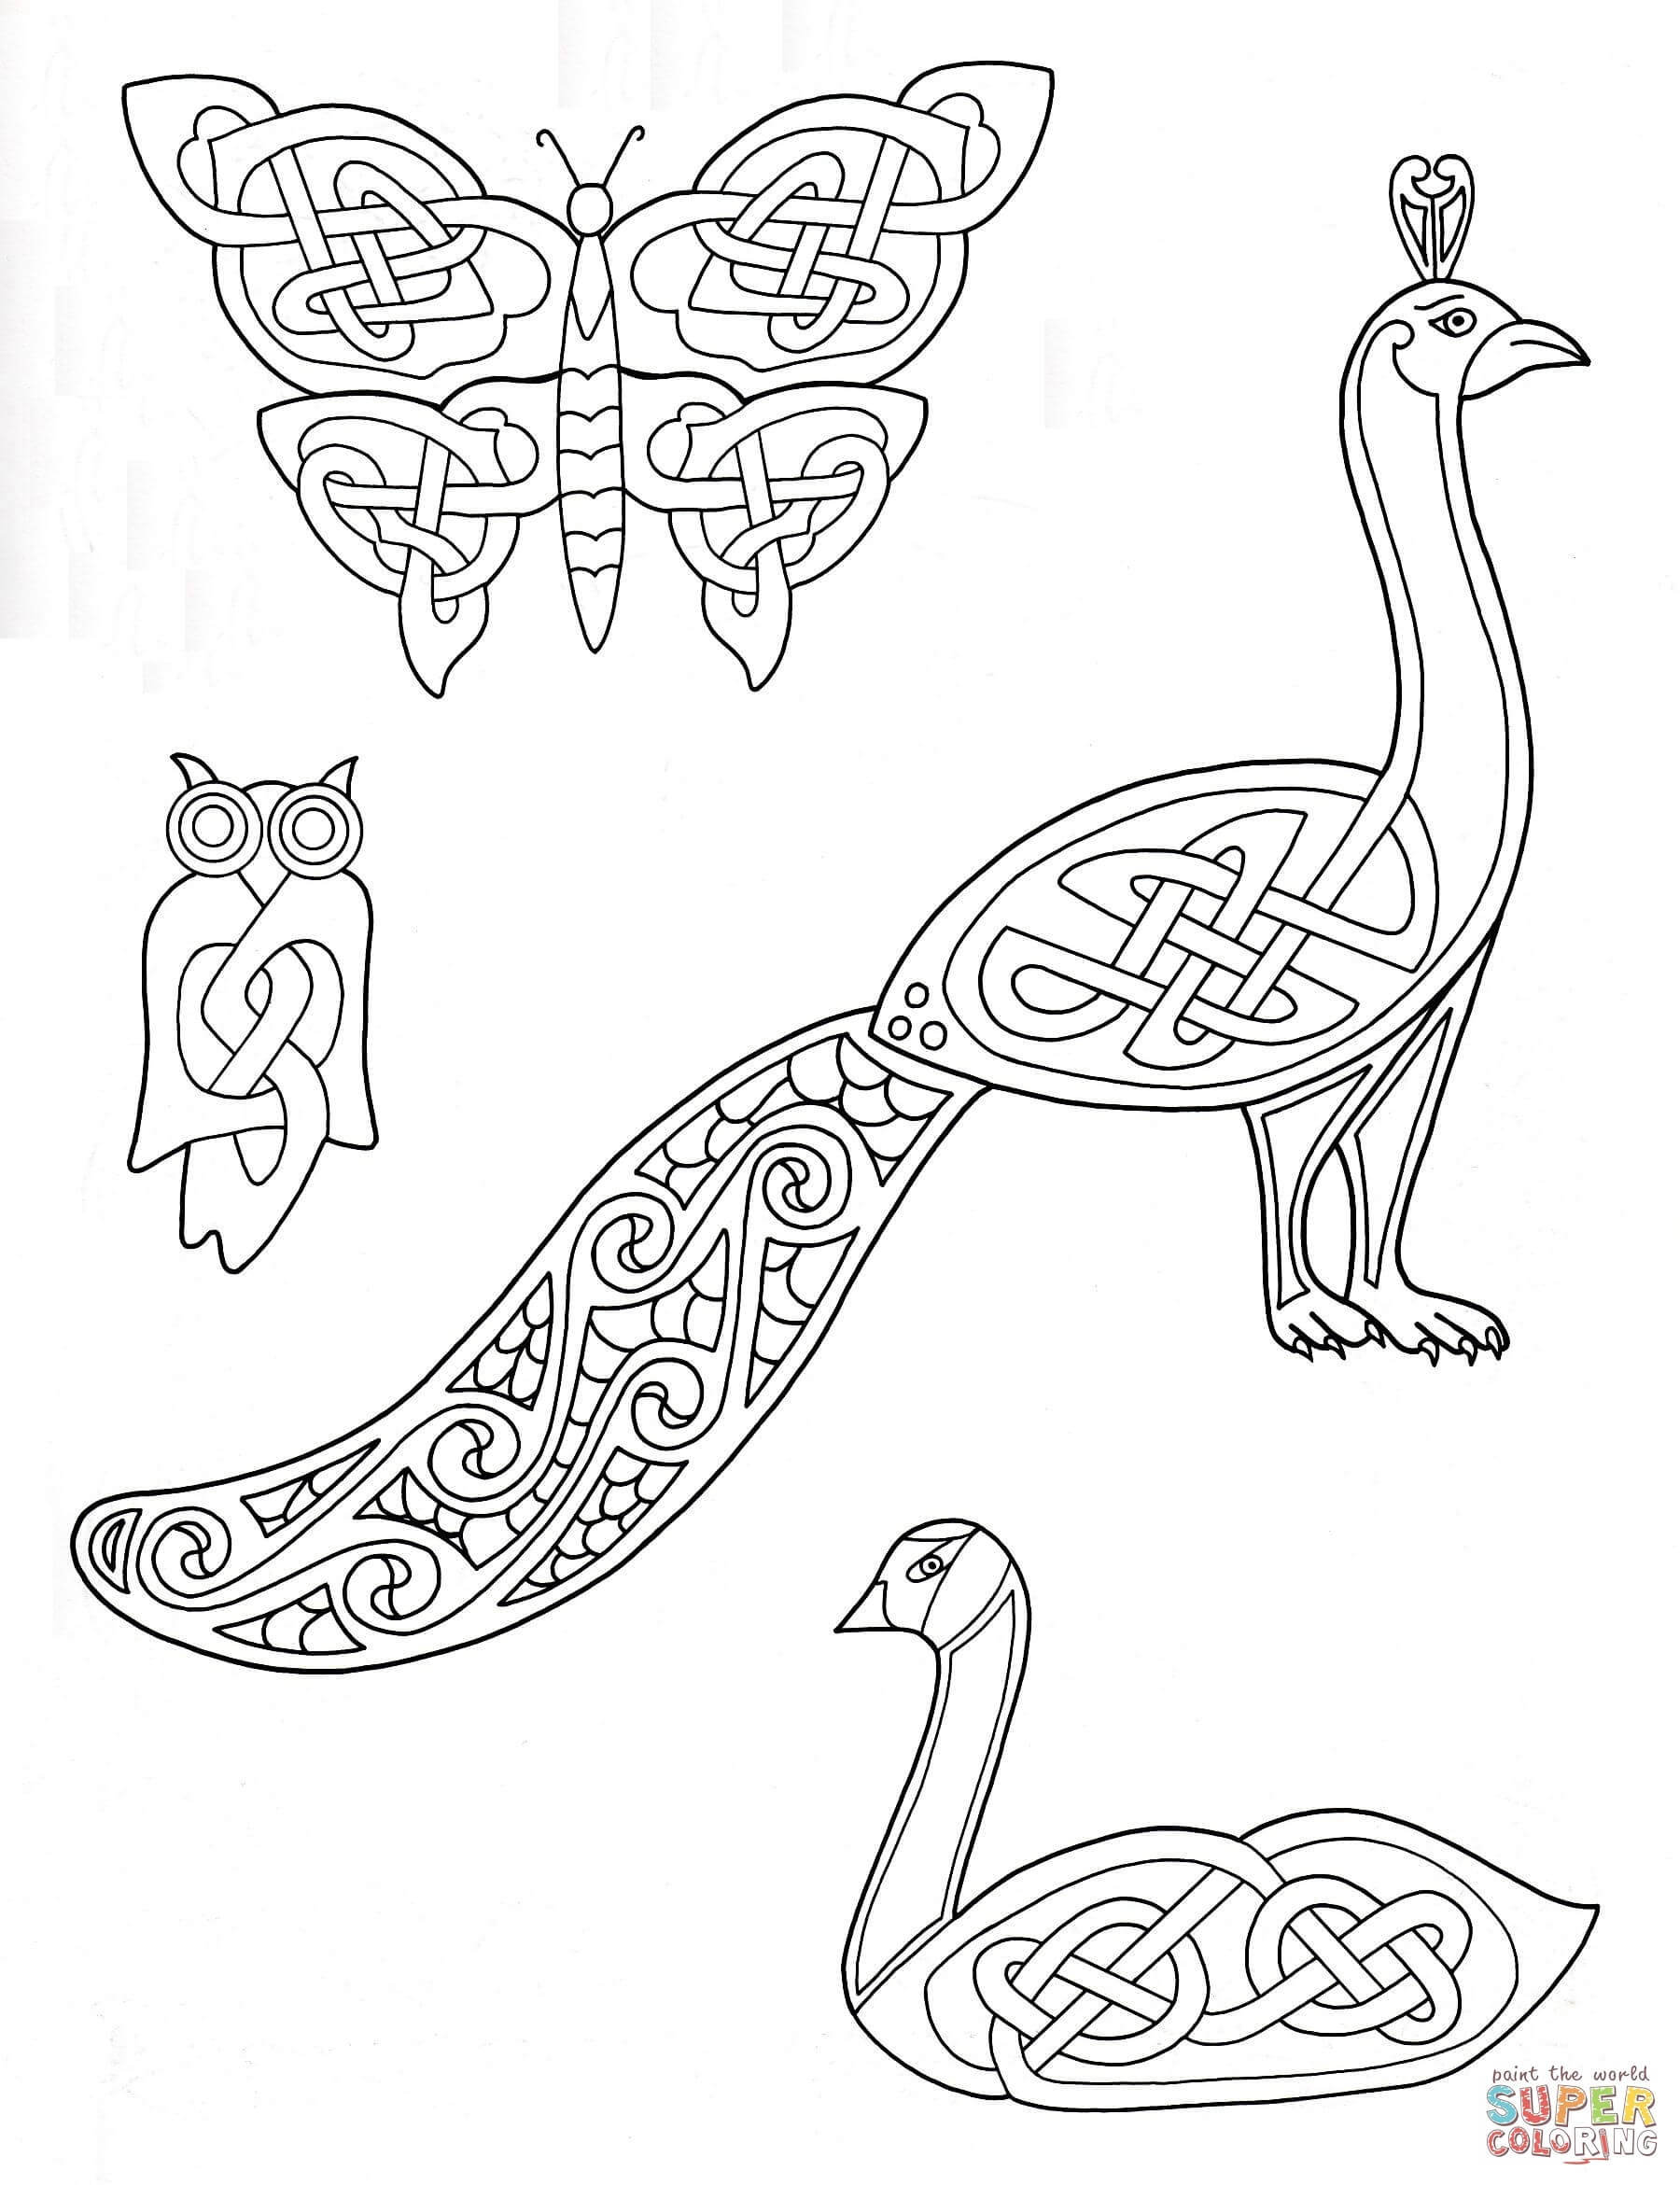 Celtic Animals Designs Coloring Page | Free Printable Coloring Pages - Free Printable Arty Animal Outlines